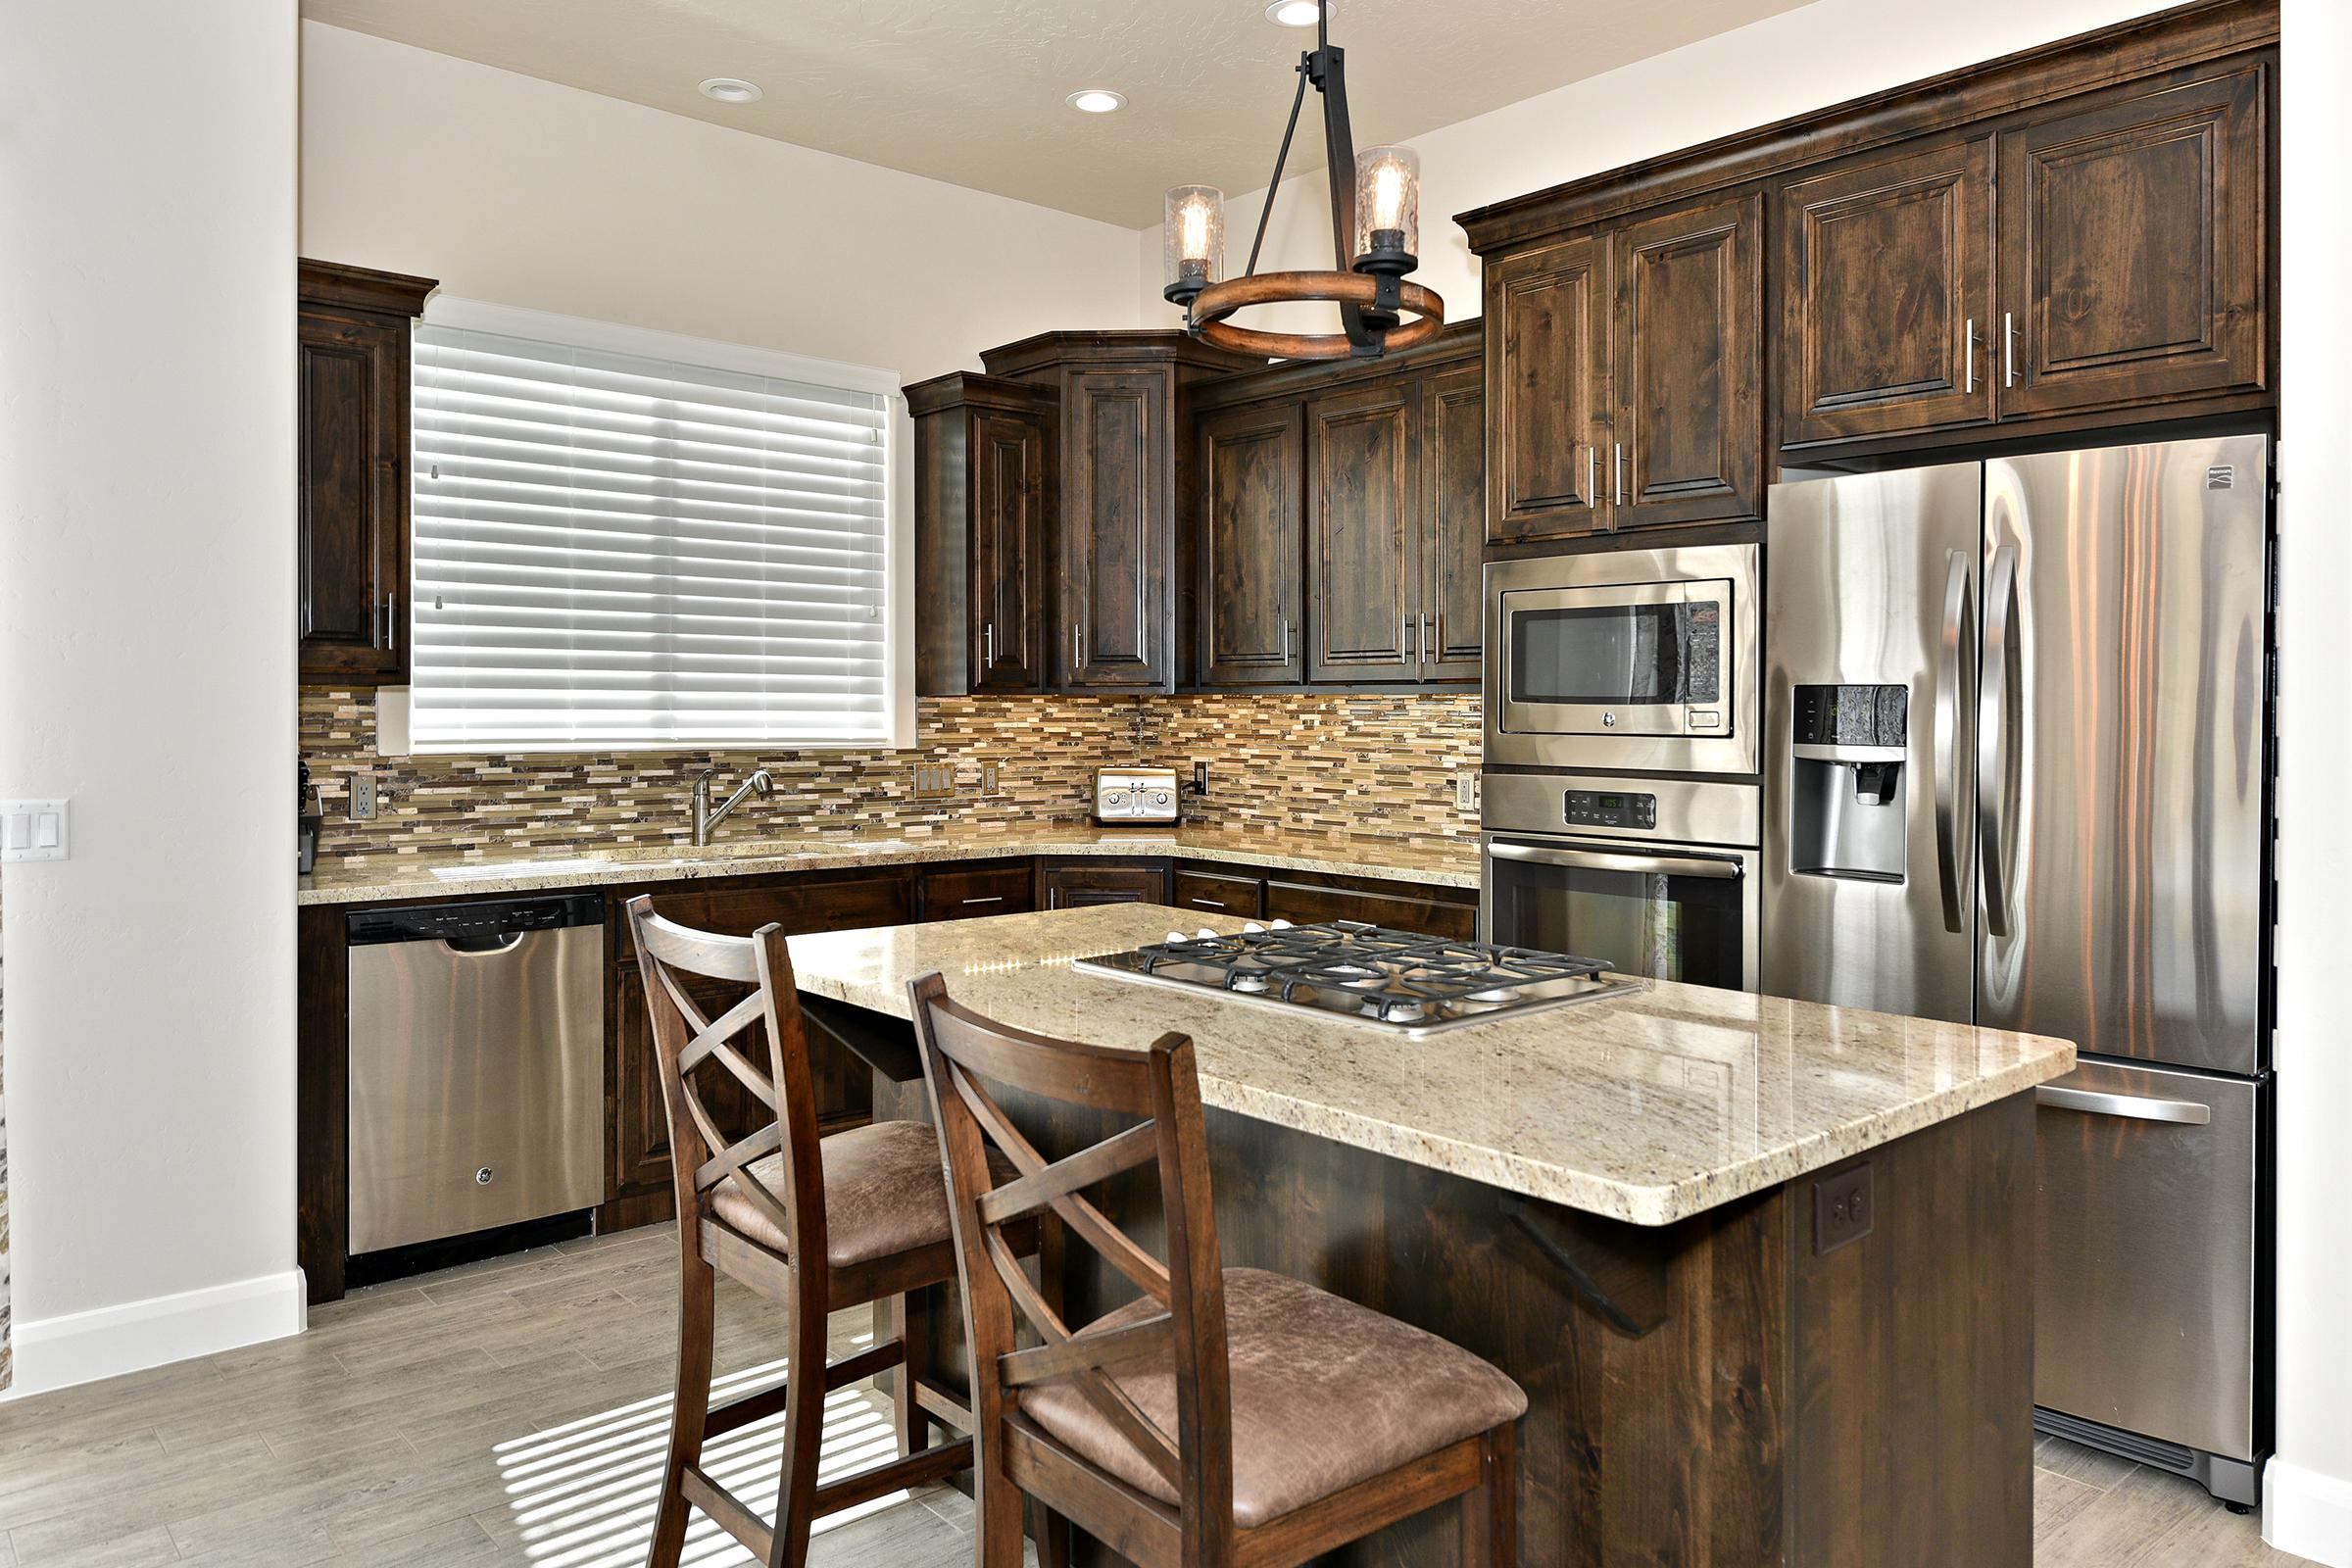 The Kitchen Island seats 2 adults and creates a great space for serving and preparing meals.